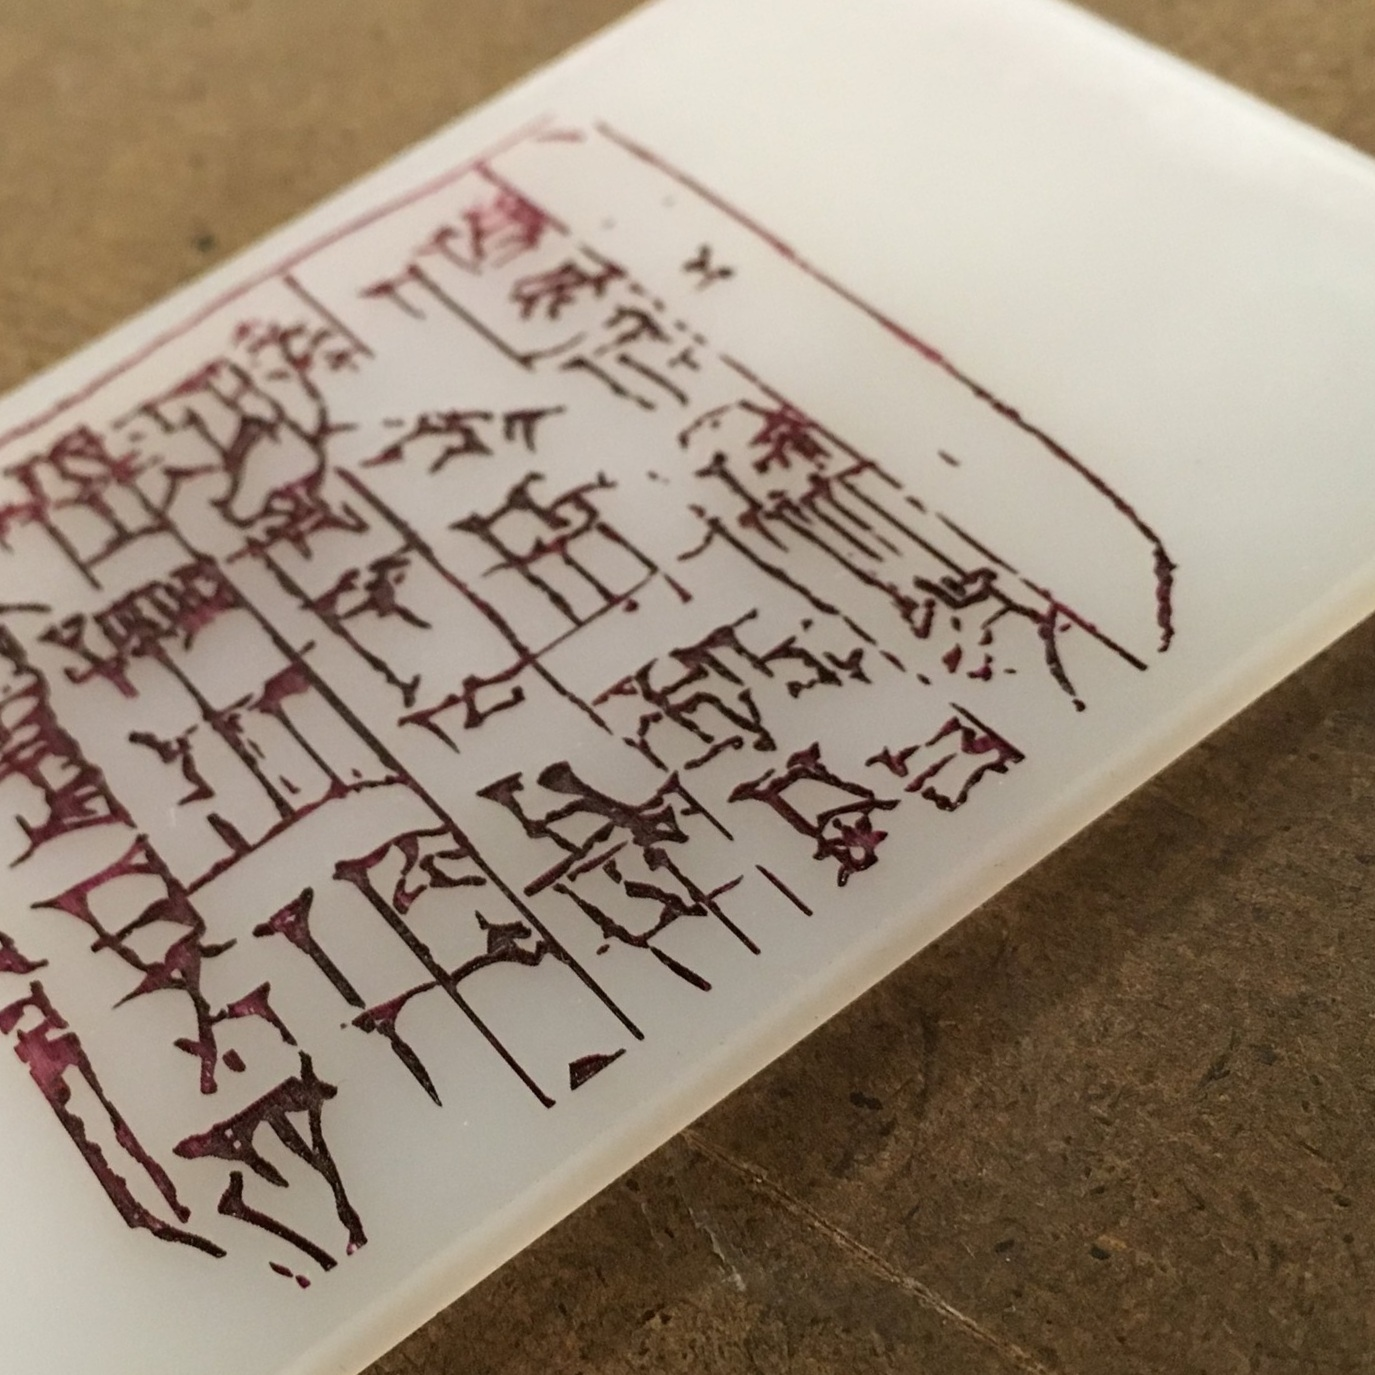 laser-etched AI cuneiform